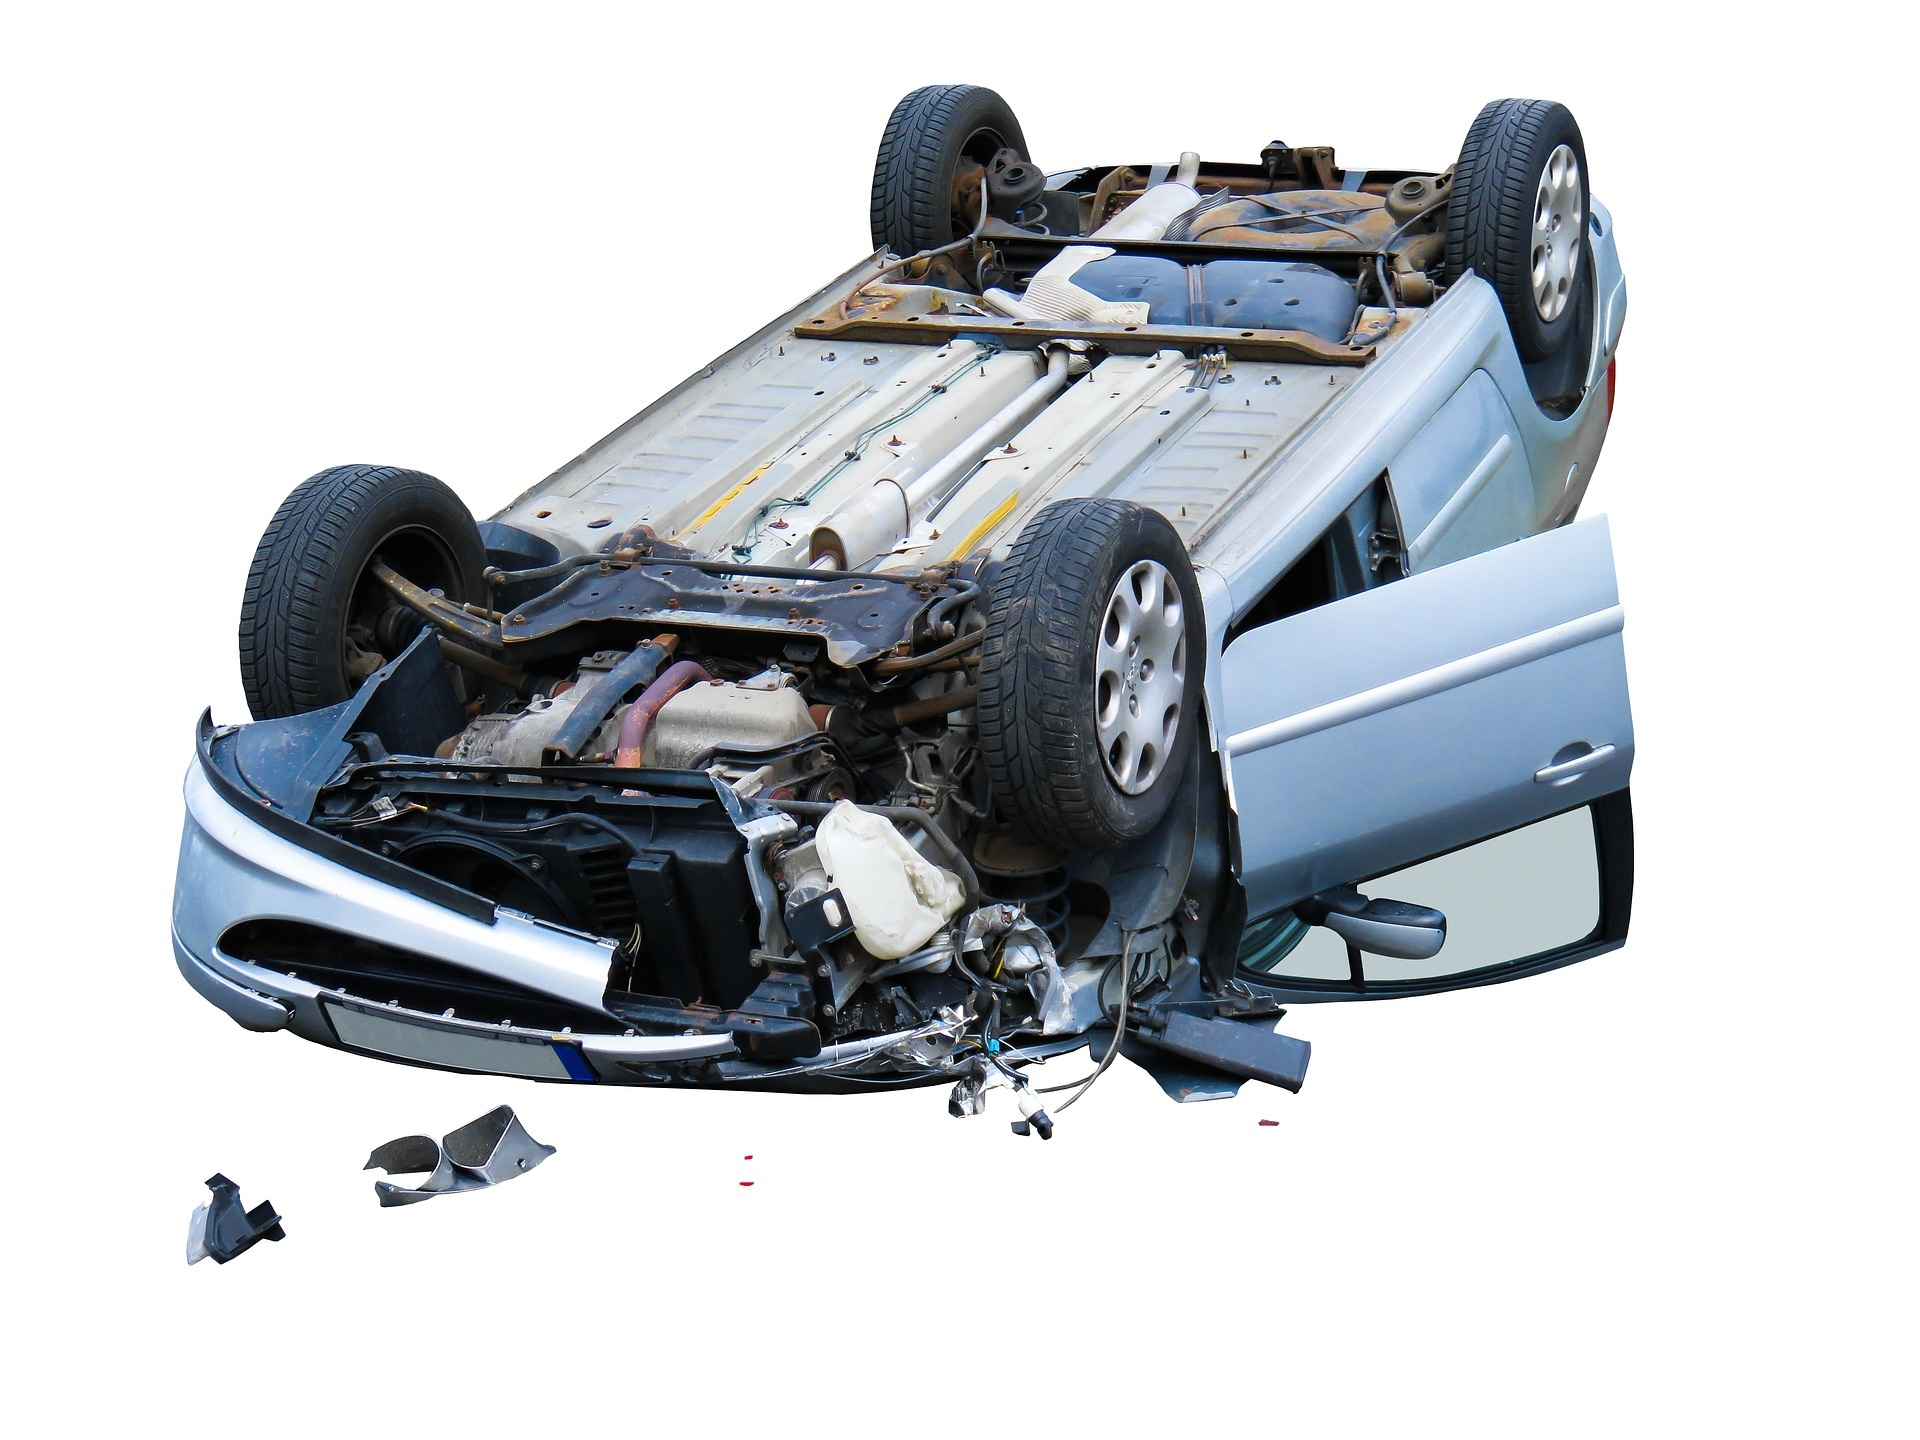 Top 4 Causes of Car Accidents in California